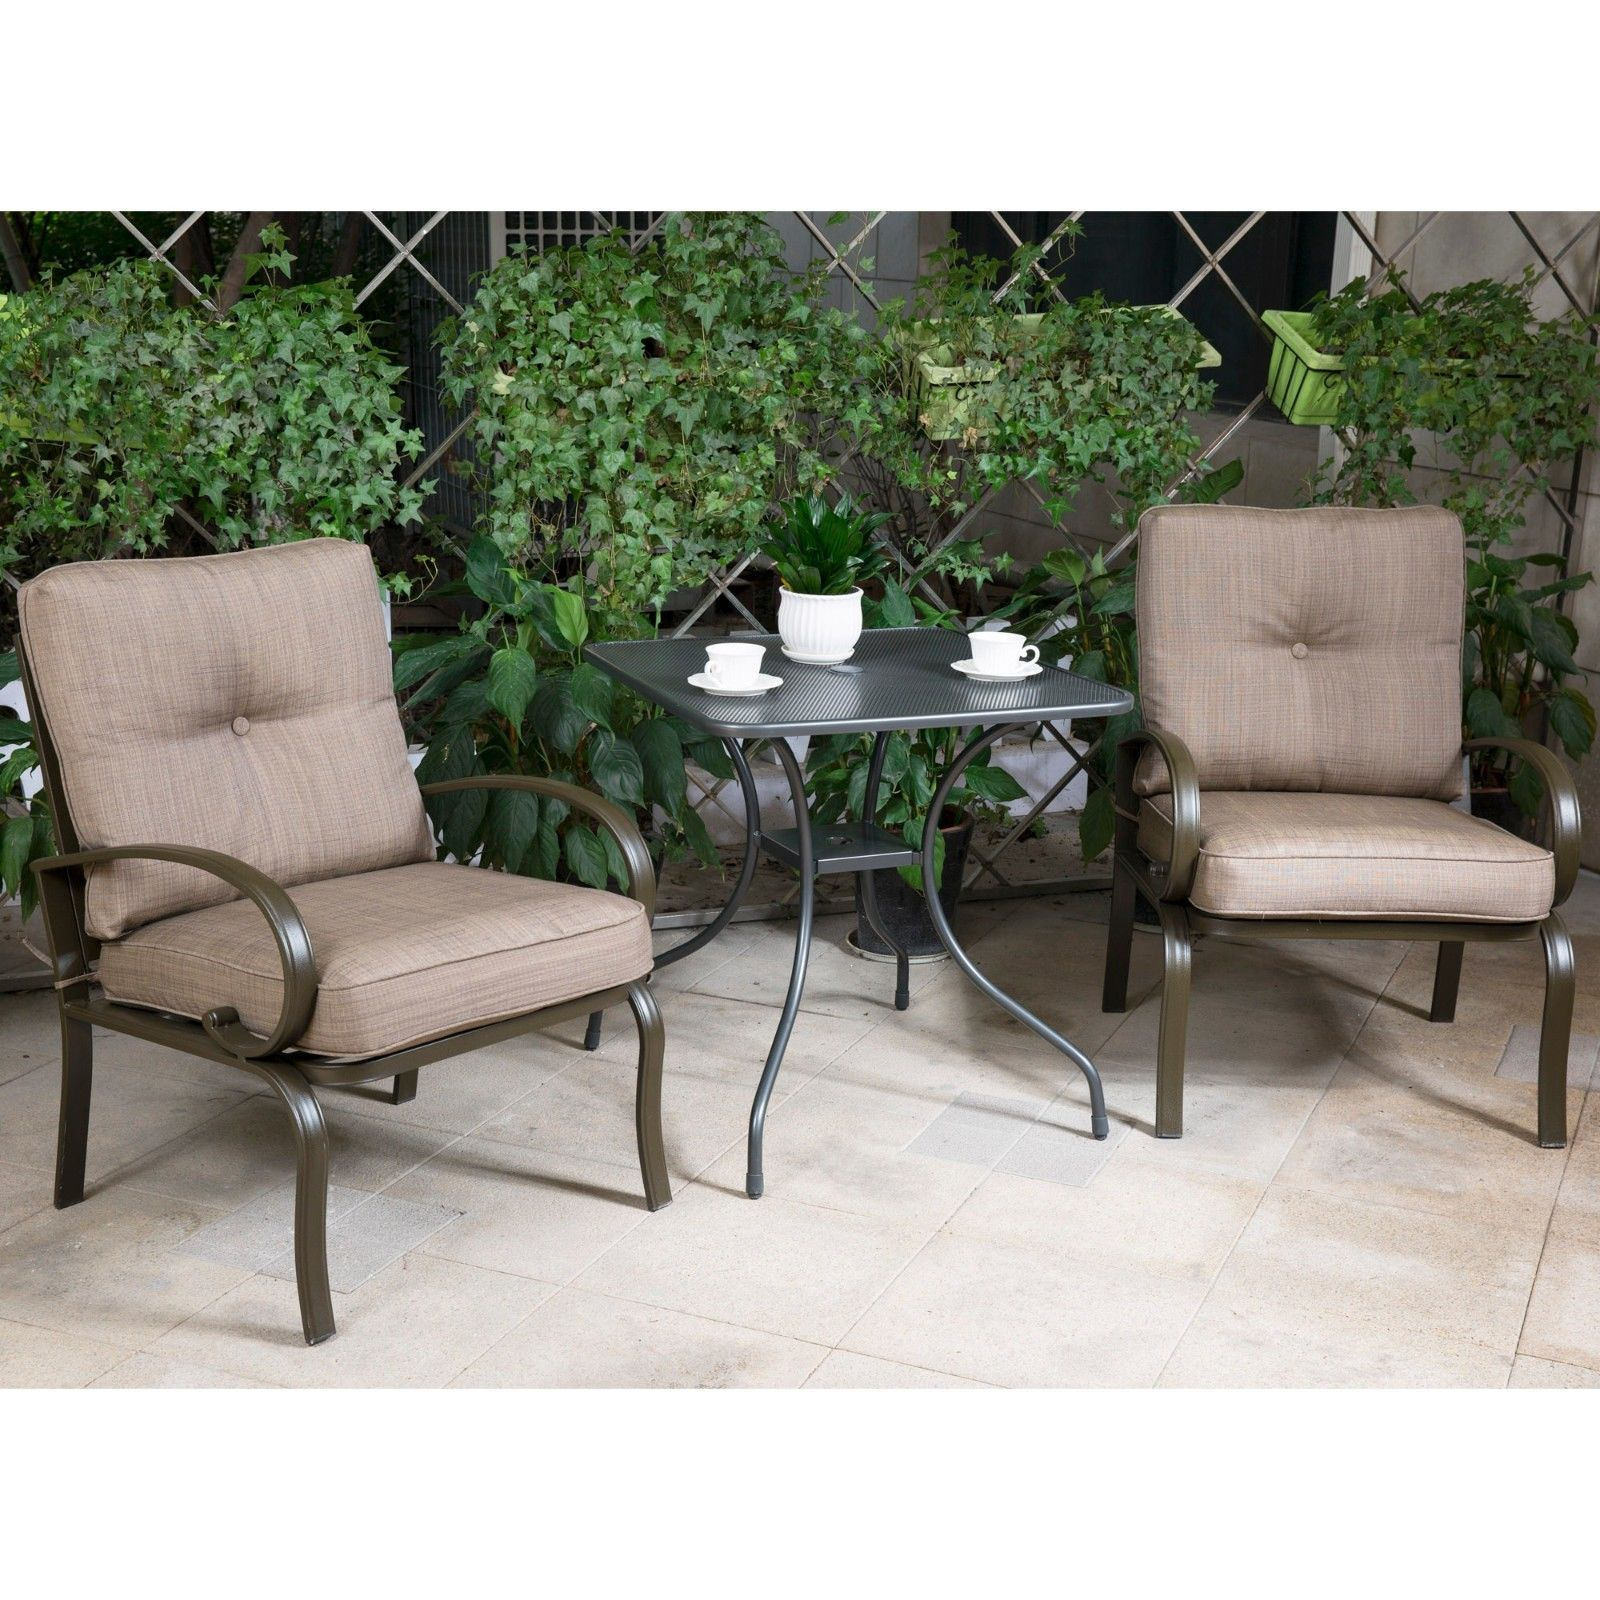 "Outdoor 3 PC Bistro Patio Furniture Set Wrought Iron 28"" Steel Chairs with Table"